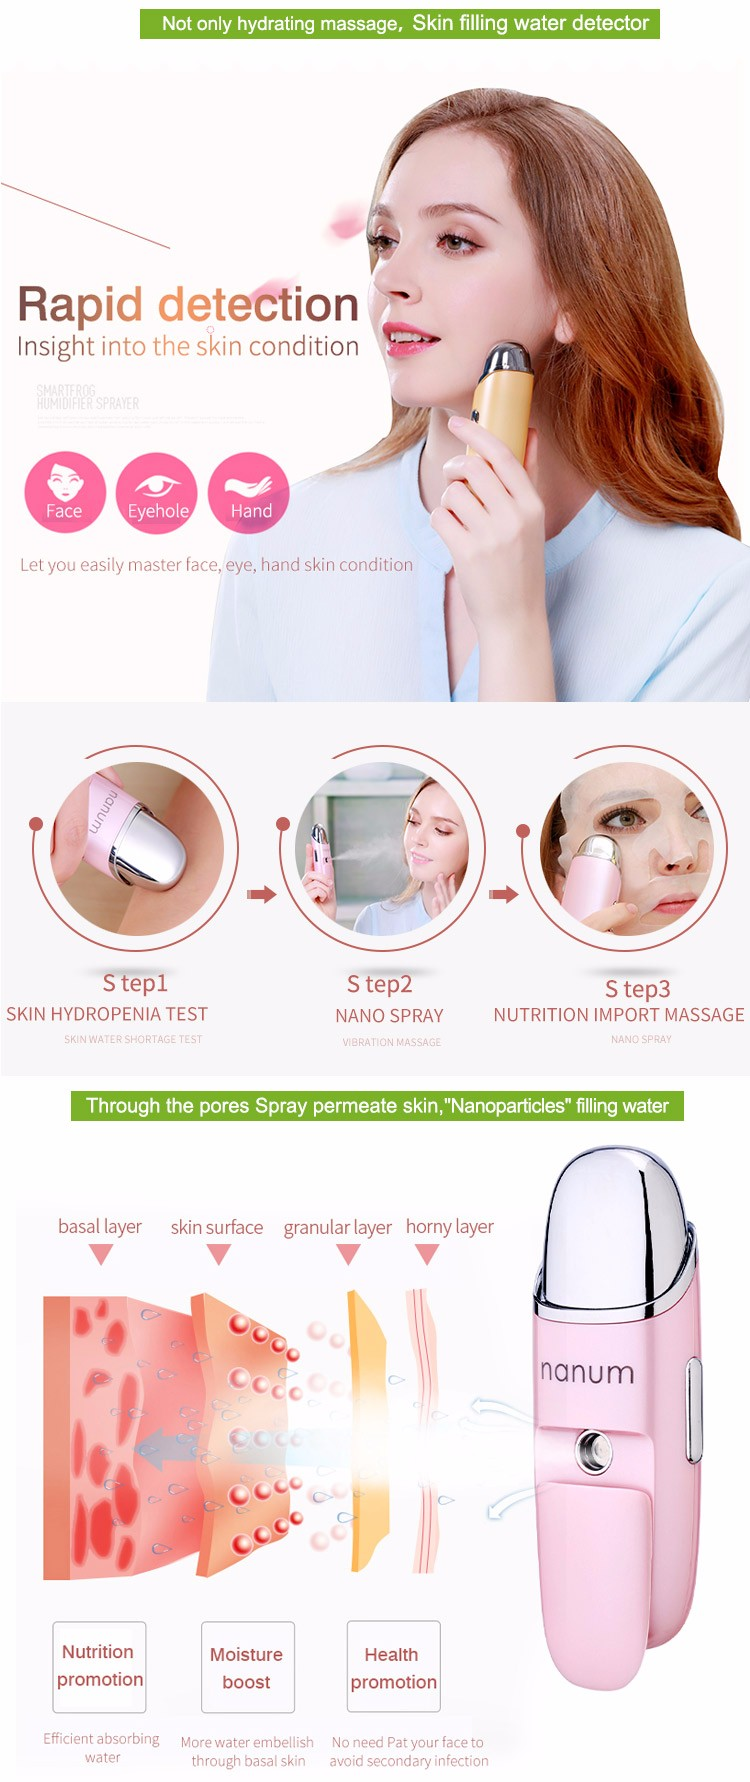 Logo Custom Nutrition Promotion Portable Beauty Equipment